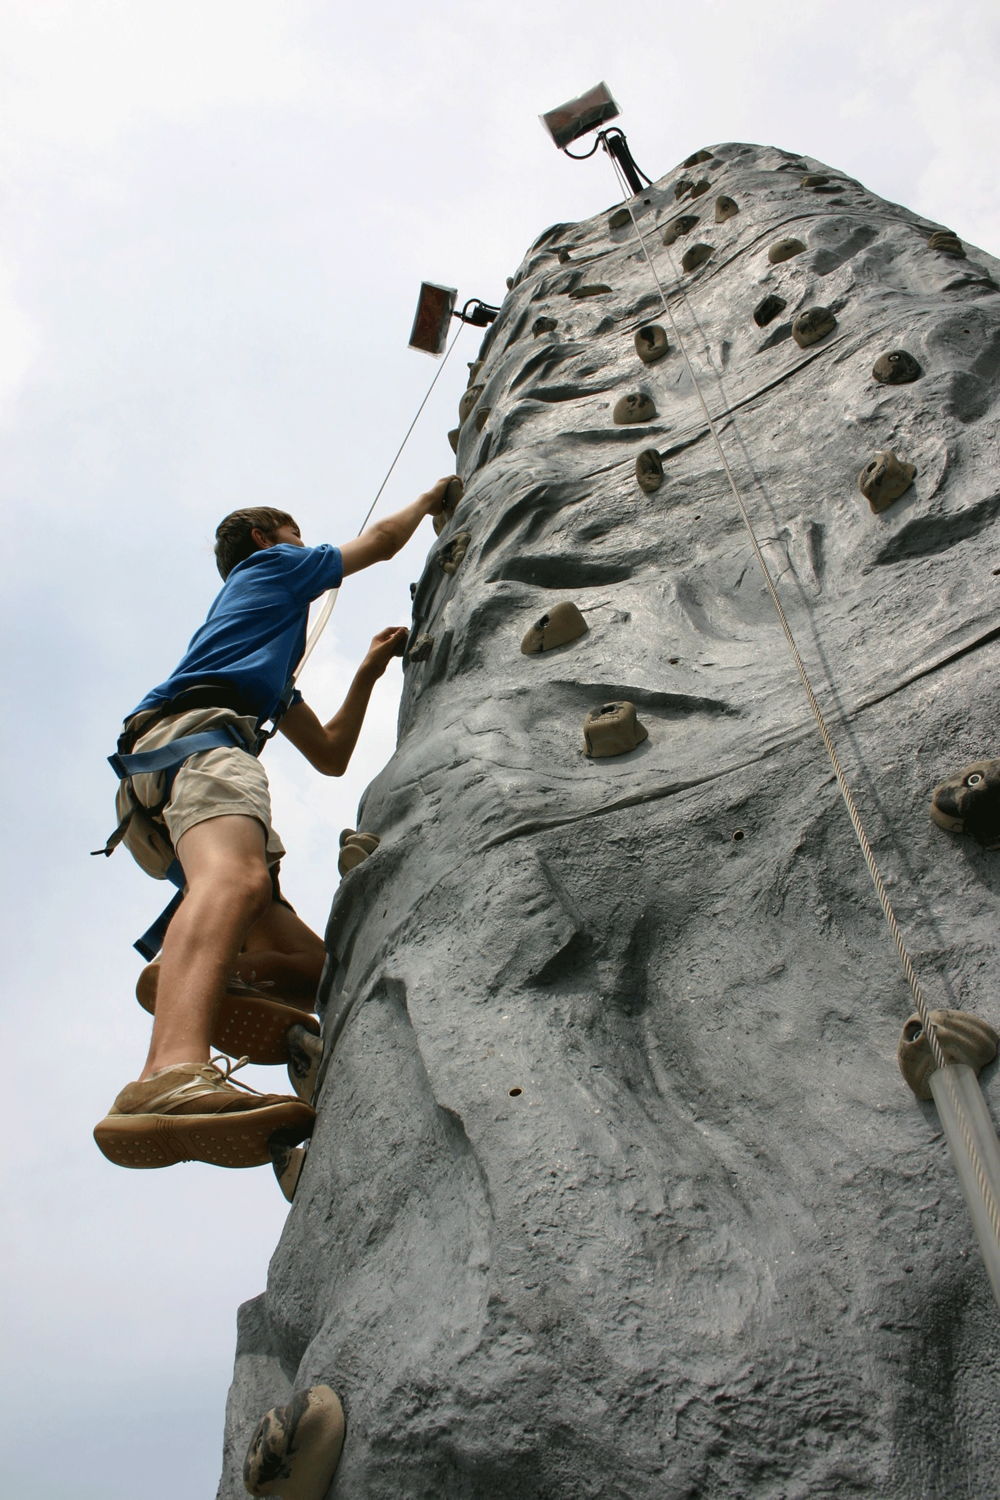 The Rock Climbing Wall